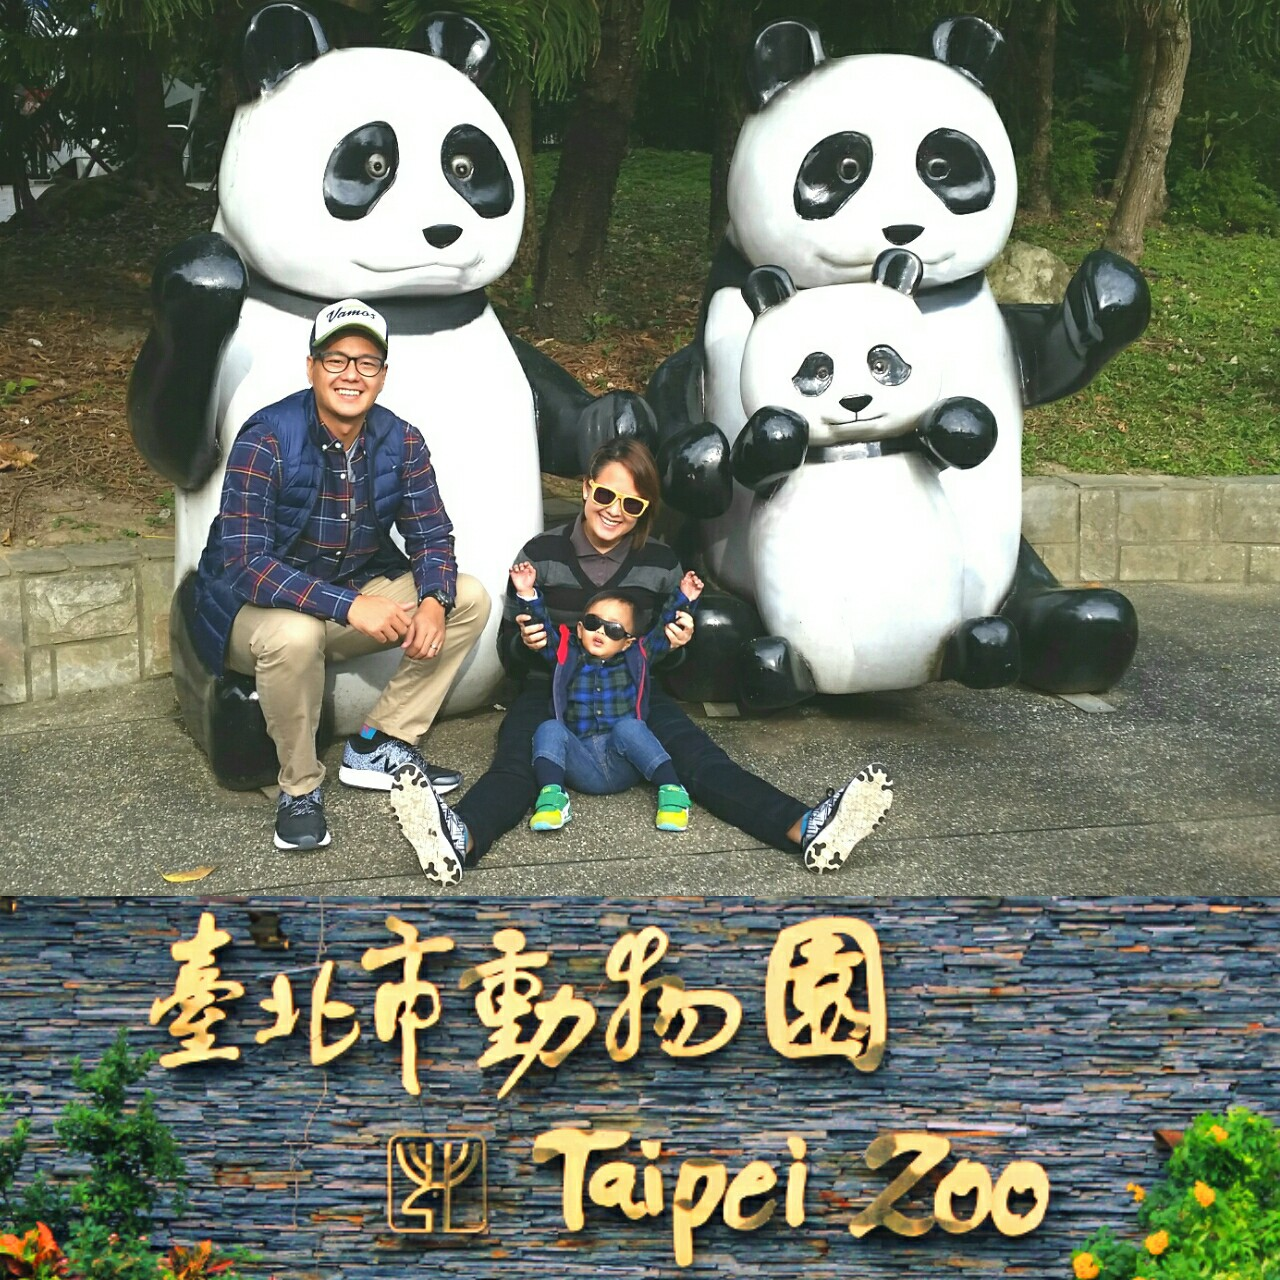 CHILD-FRIENDLY PLACES. Mother and entrepreneur Reese Tirona-Rojas advises picking places kids will enjoy, like this zoo during their family travel in Taiwan, when her son Andres was close to two years old. Photo courtesy of Reese Tirona-Rojas